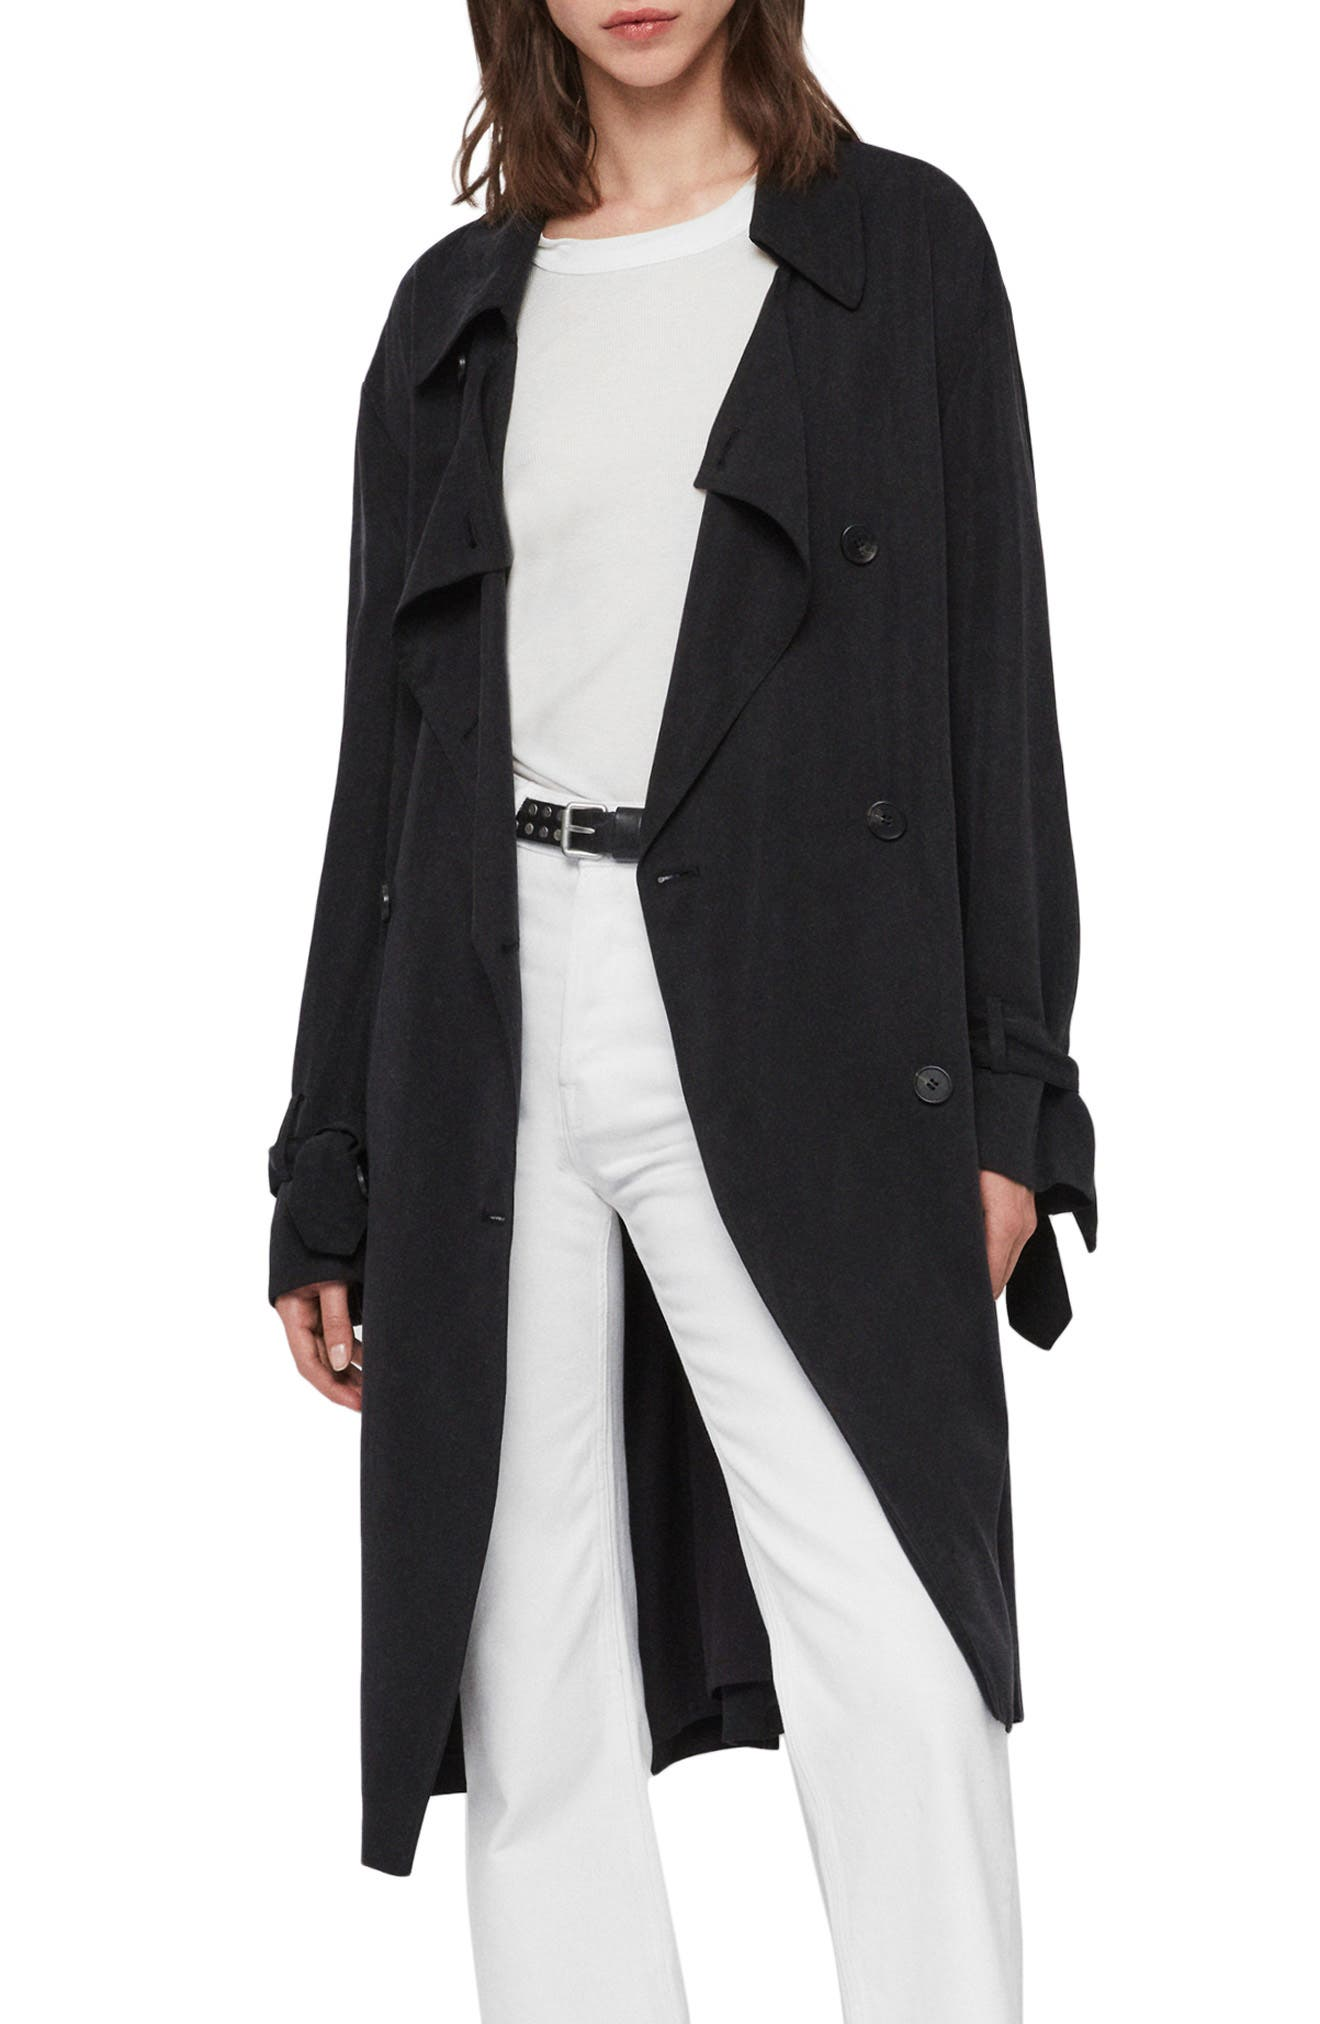 Allsaints Coats Ria Trench Coat